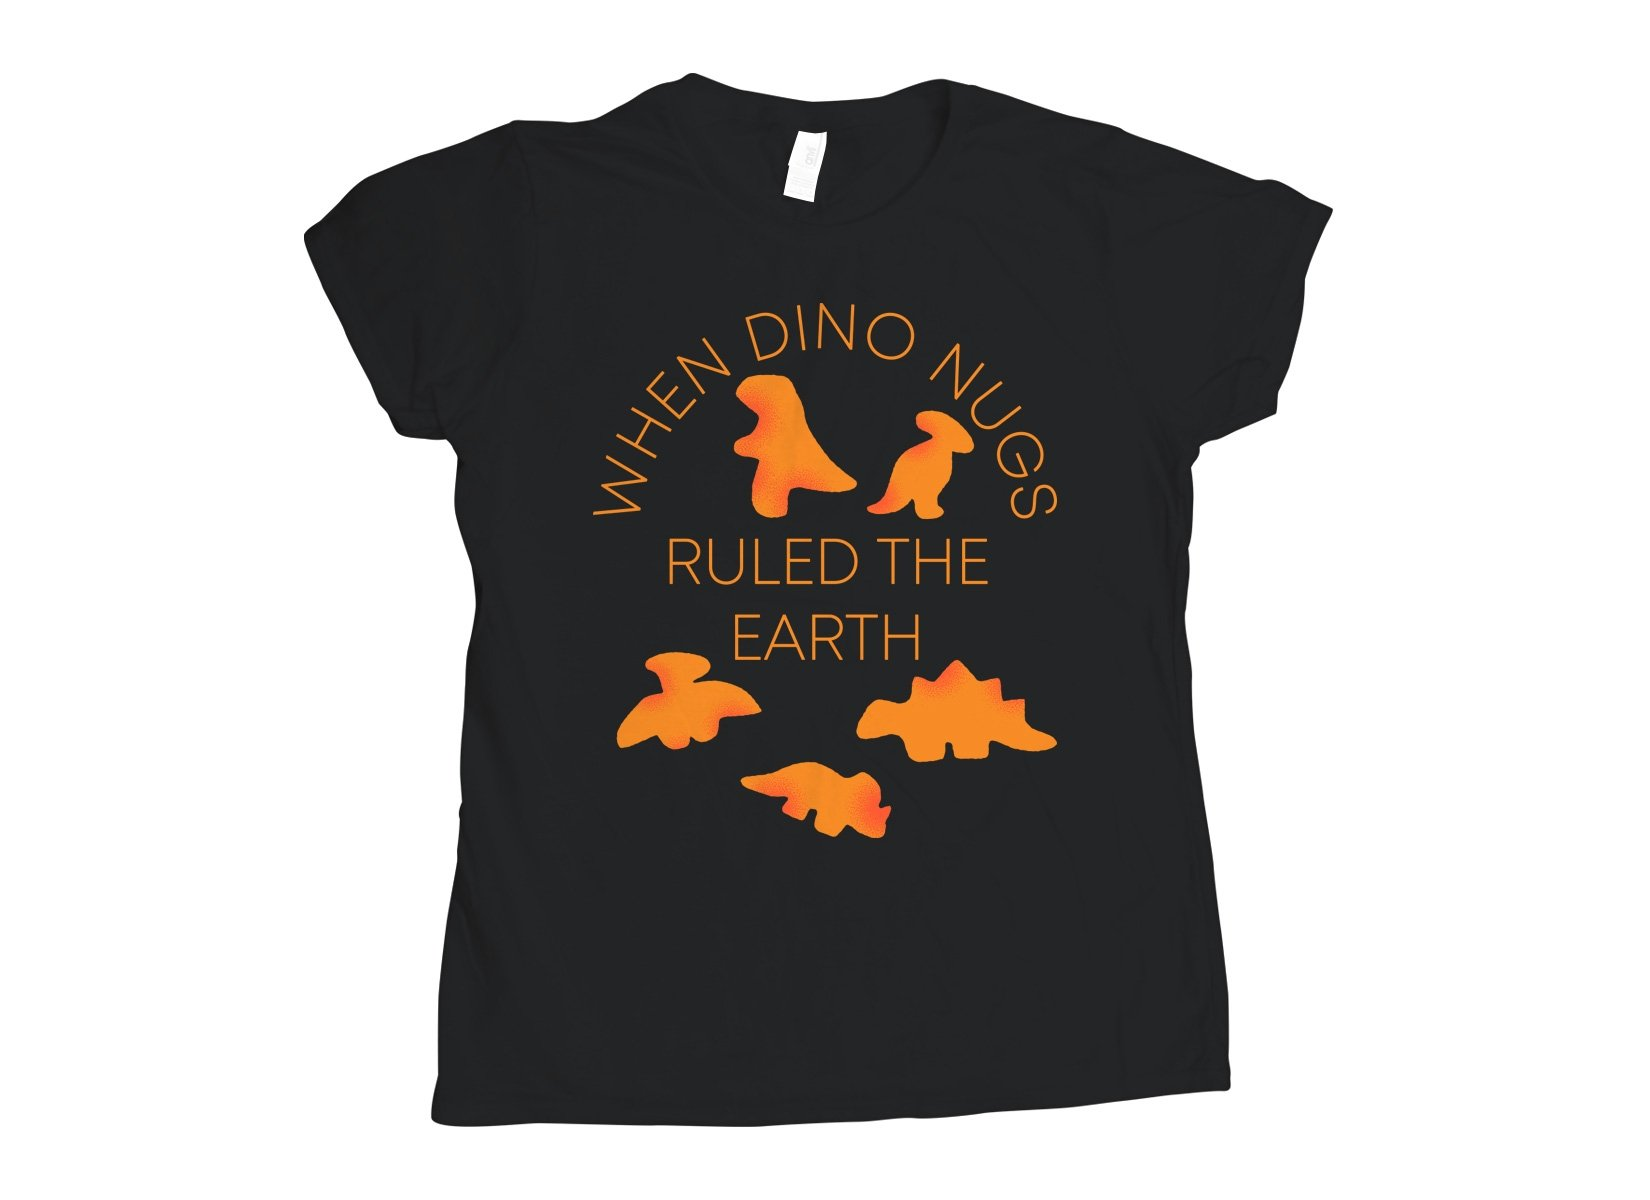 When Dino Nugs Ruled The Earth on Womens T-Shirt